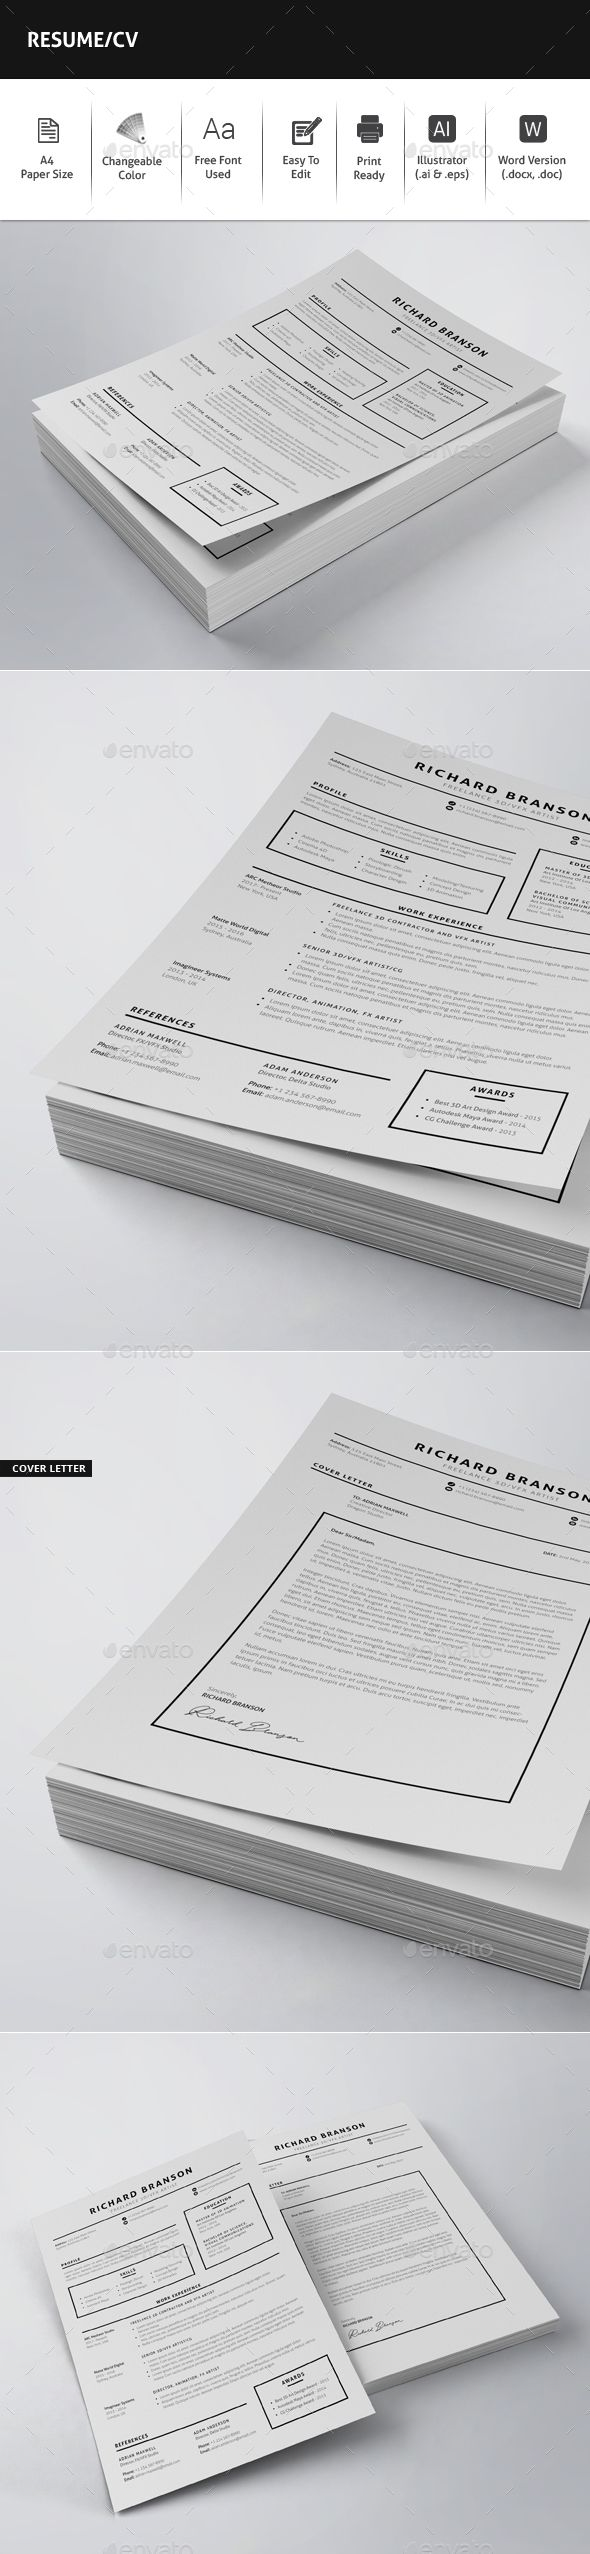 ResumeCV 32 best CV images on Pinterest